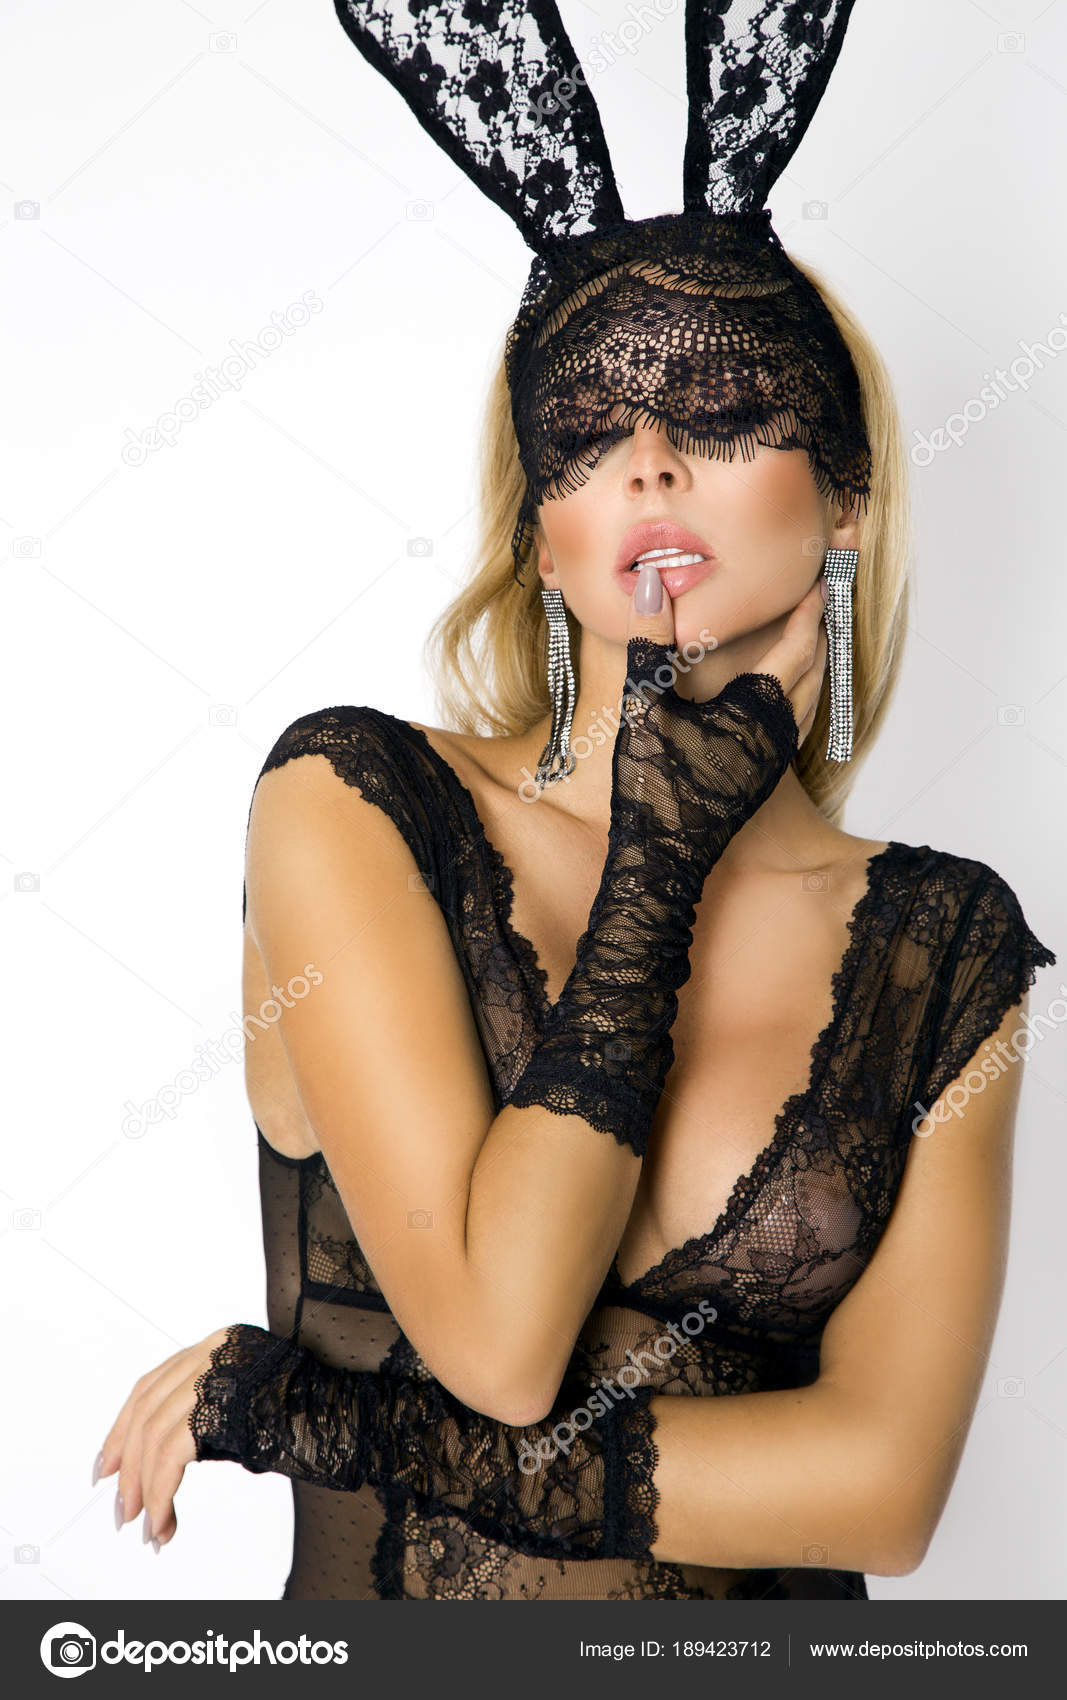 75e458bffbb Beautiful Sexy Blonde Woman Elegant Lingerie Black Lace Easter Bunny —  Stock Photo